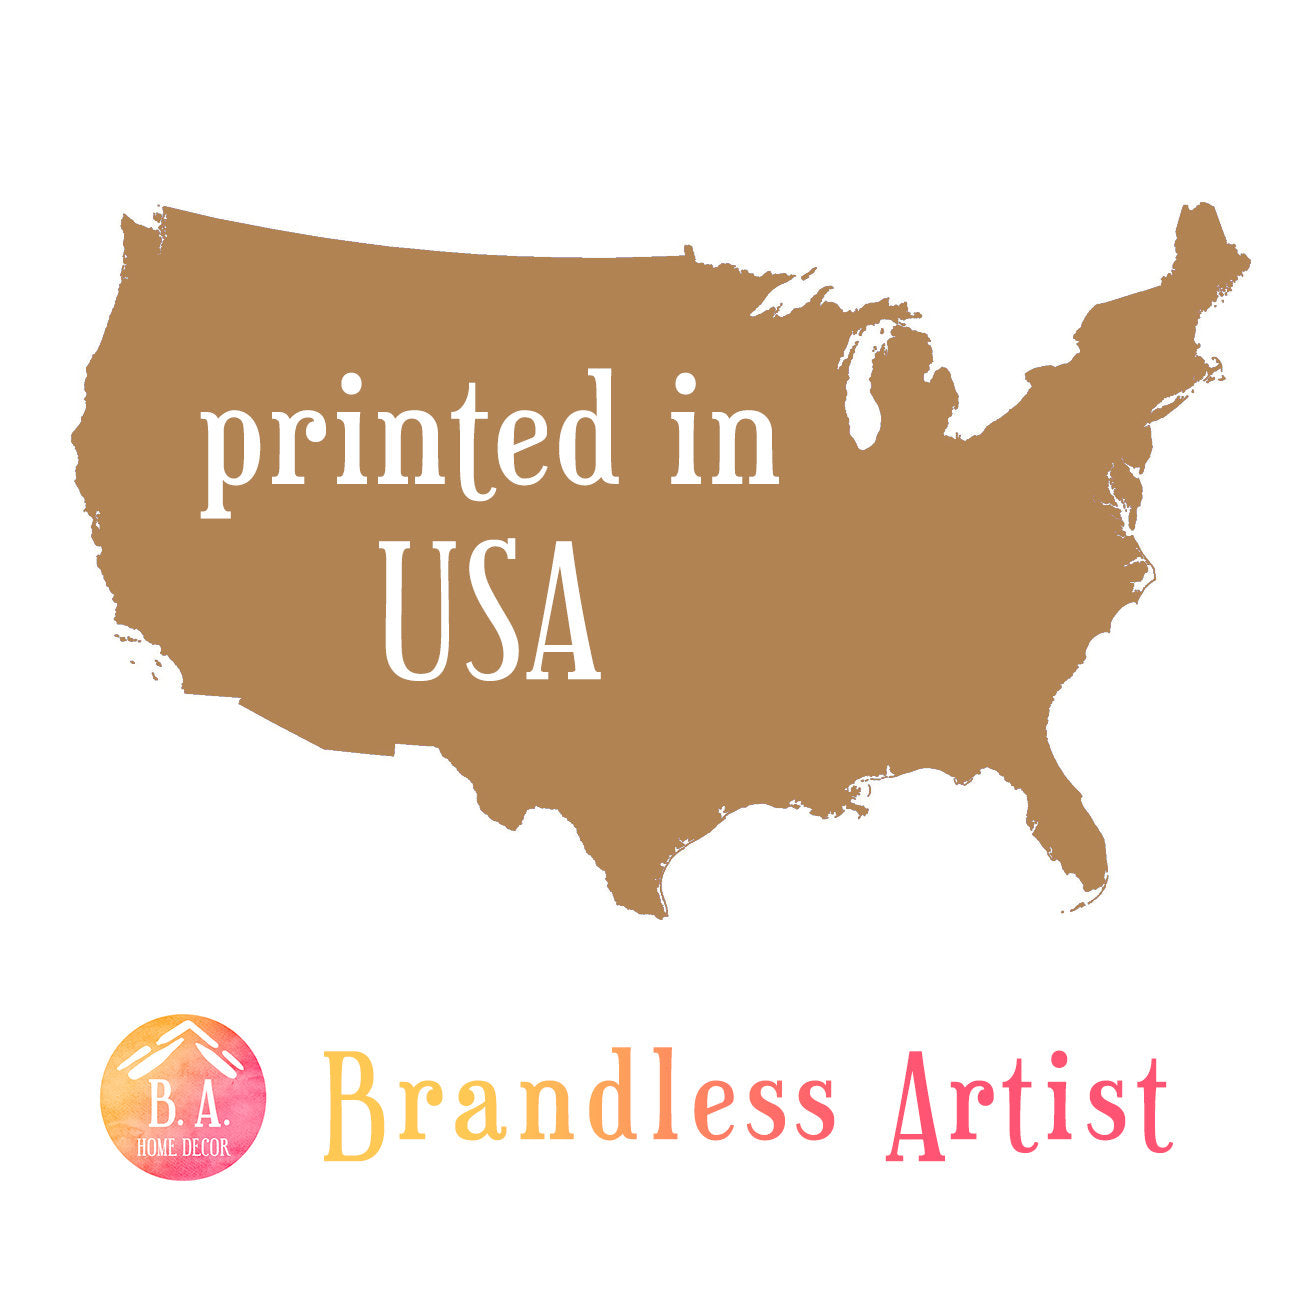 Pineapple Pillow is Printed in USA | Brandless Artist